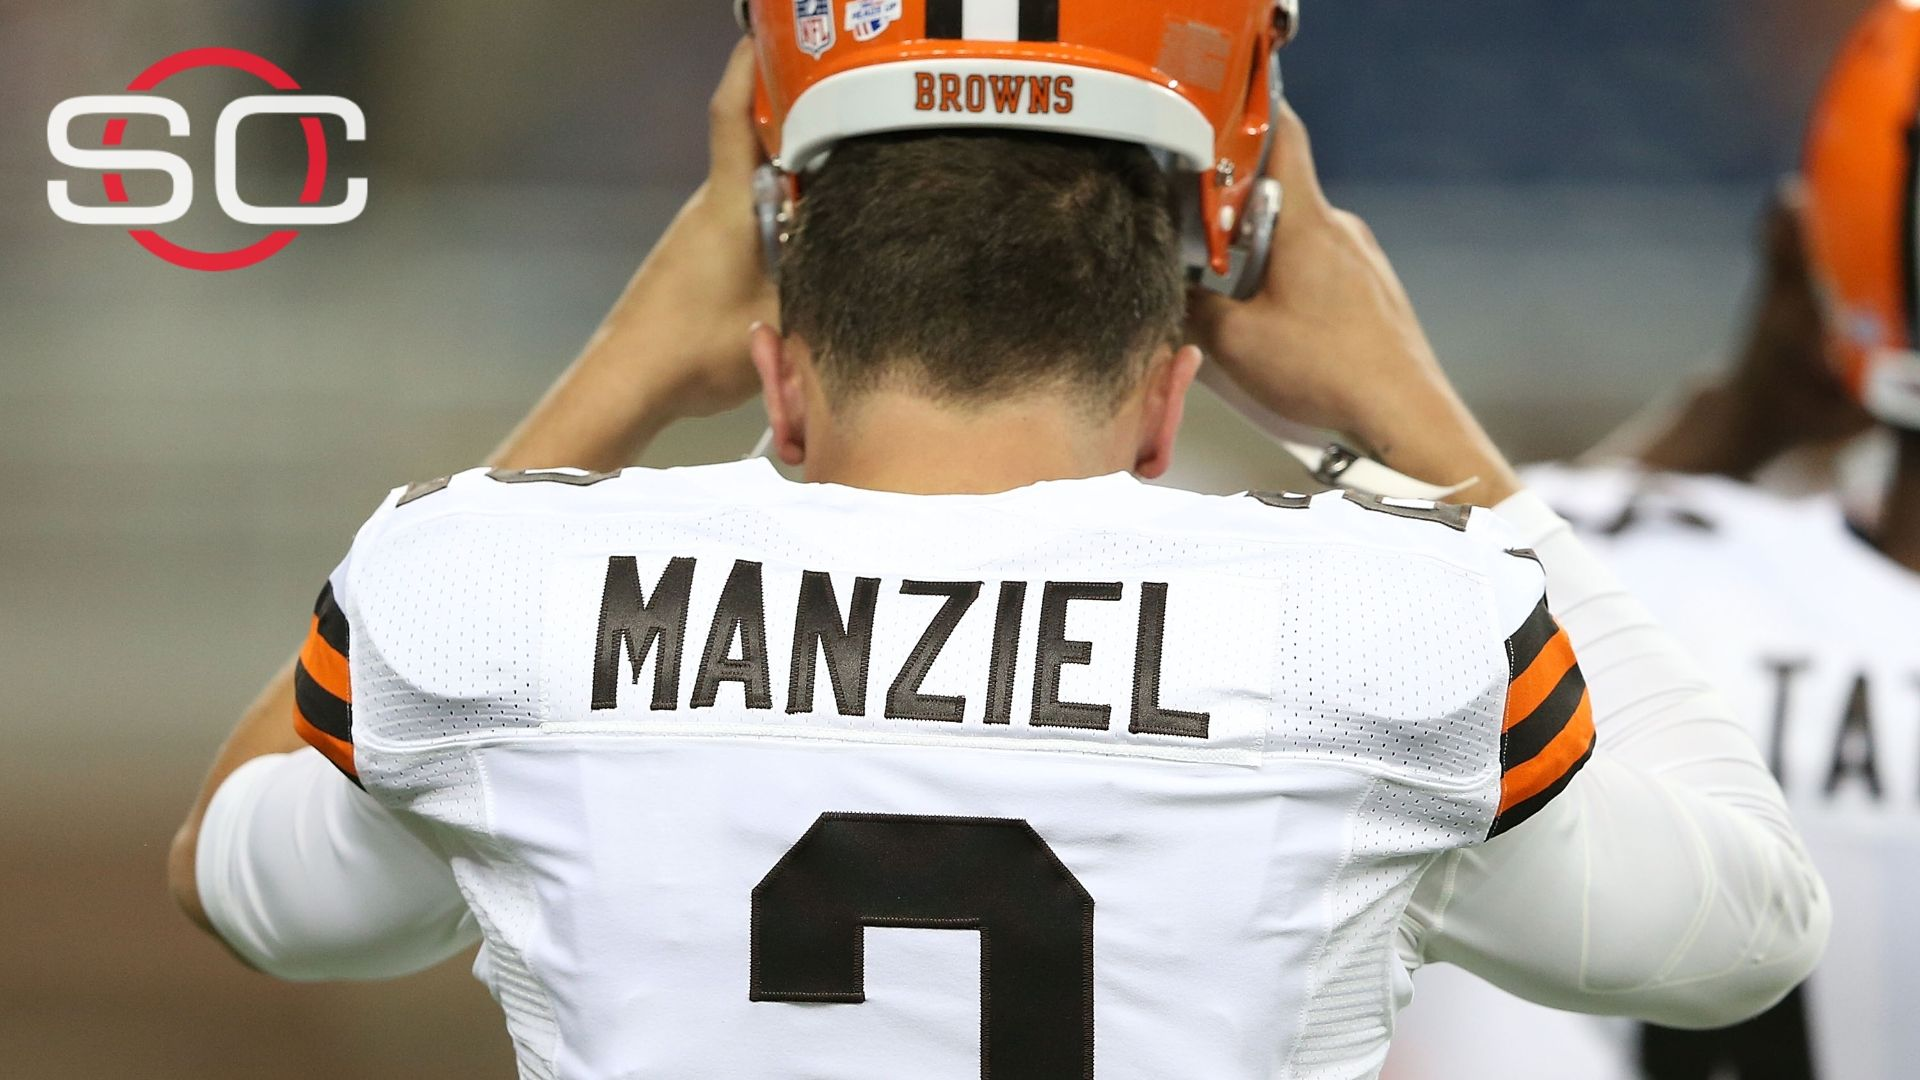 https://secure.espncdn.com/combiner/i?img=/media/motion/2016/0311/dm_160311_nfl_manziel_dropped/dm_160311_nfl_manziel_dropped.jpg